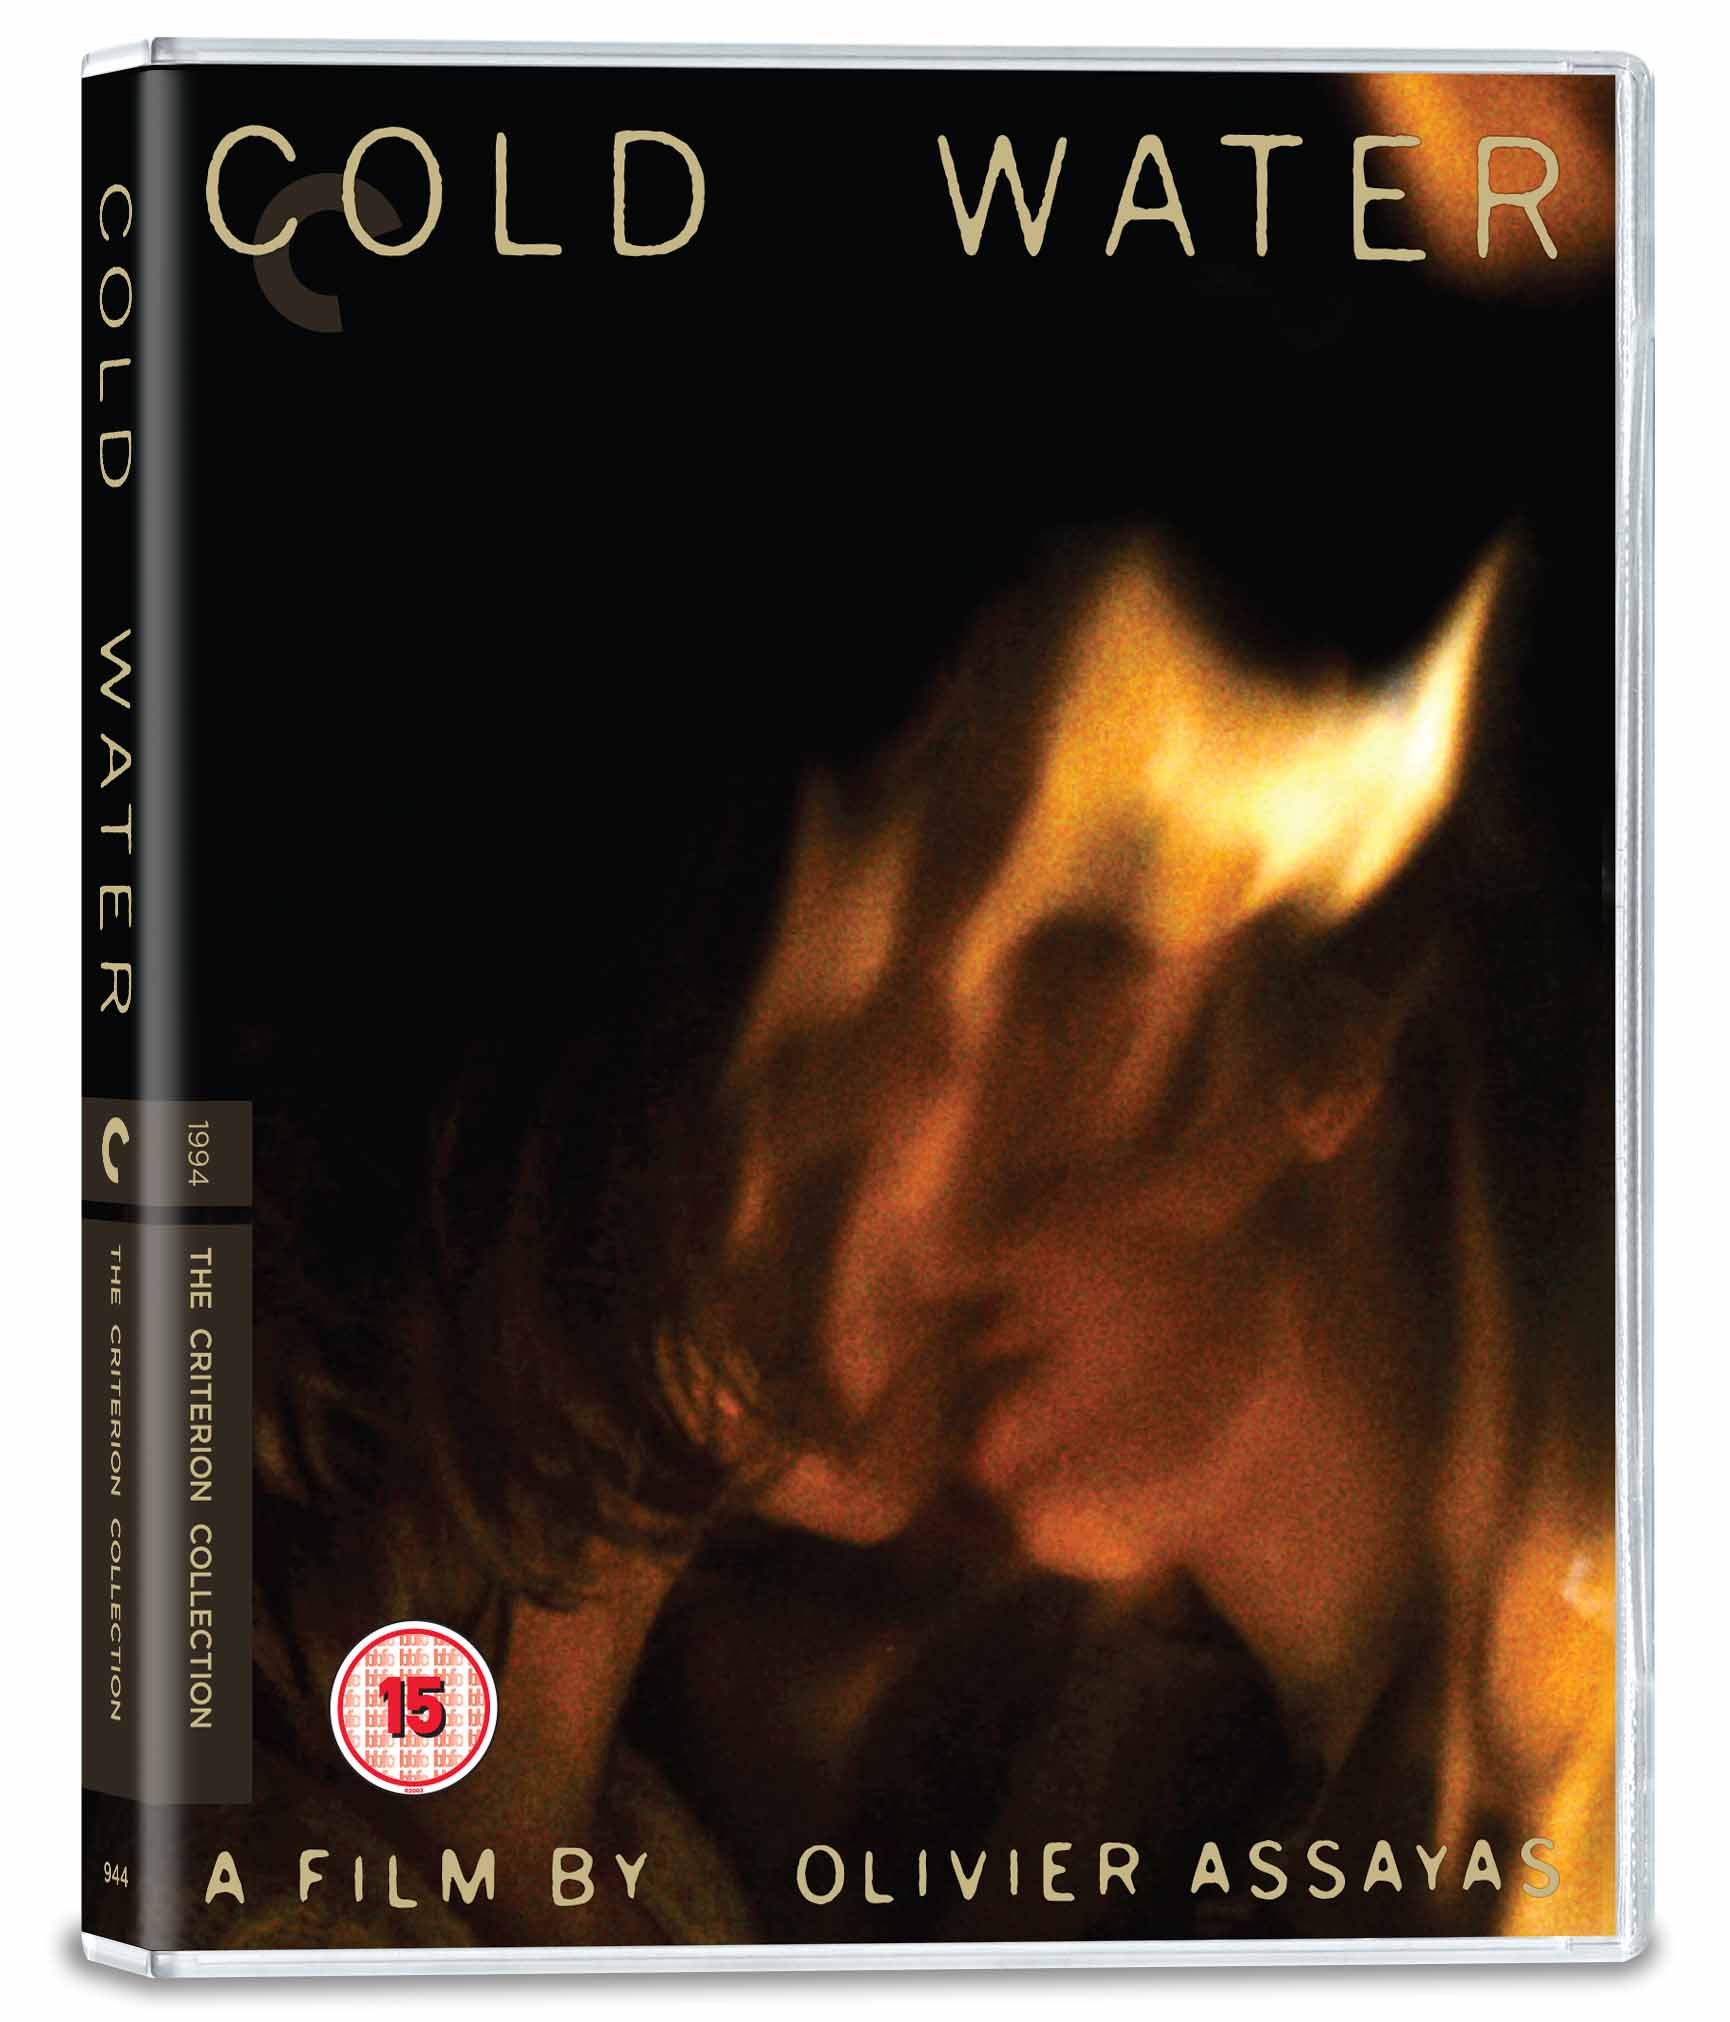 Buy Cold Water (Blu-ray)